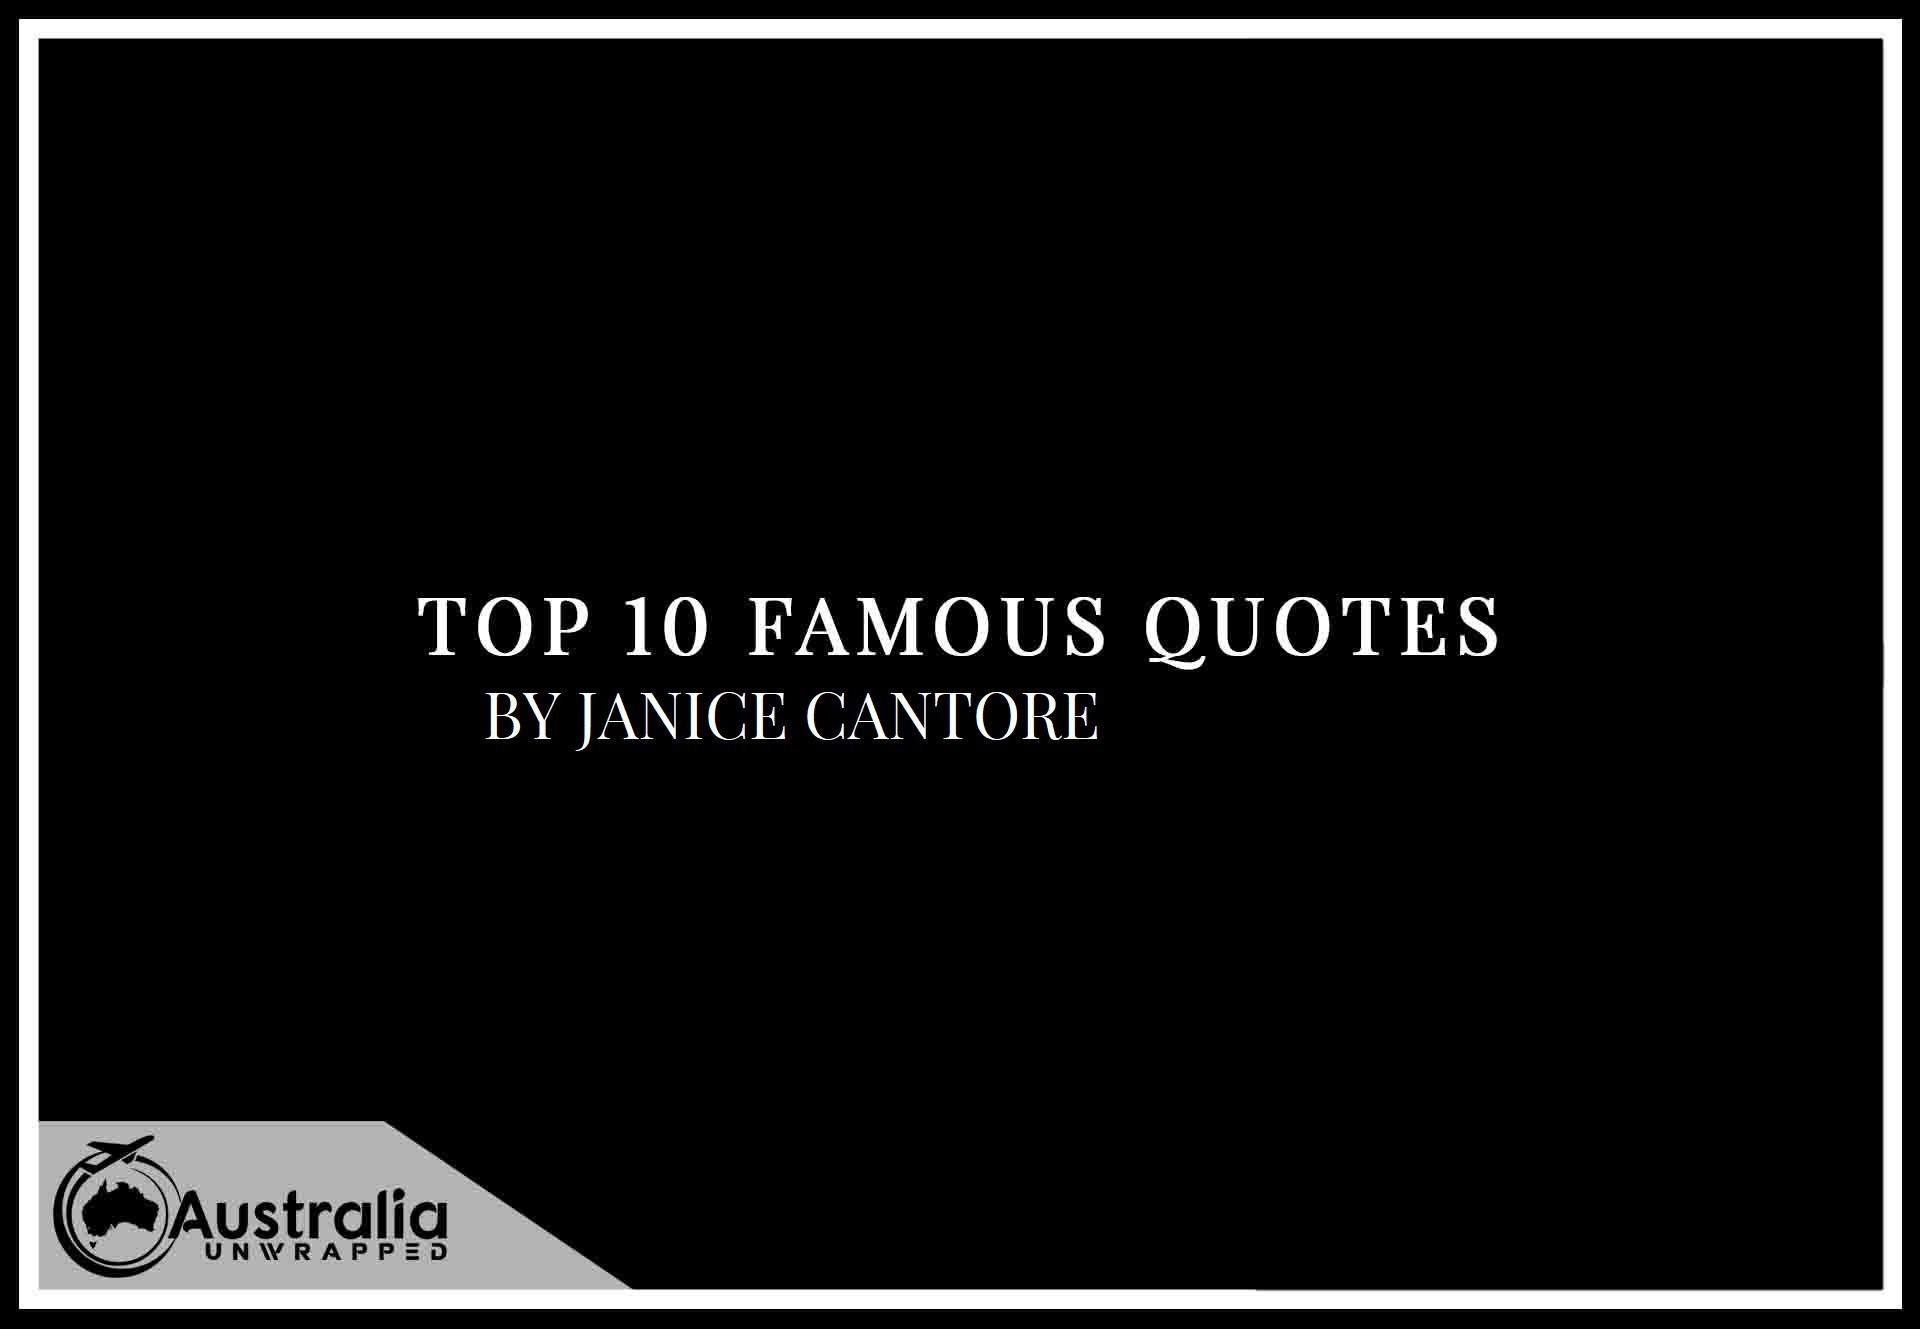 Top 10 Famous Quotes by Author Janice Cantore